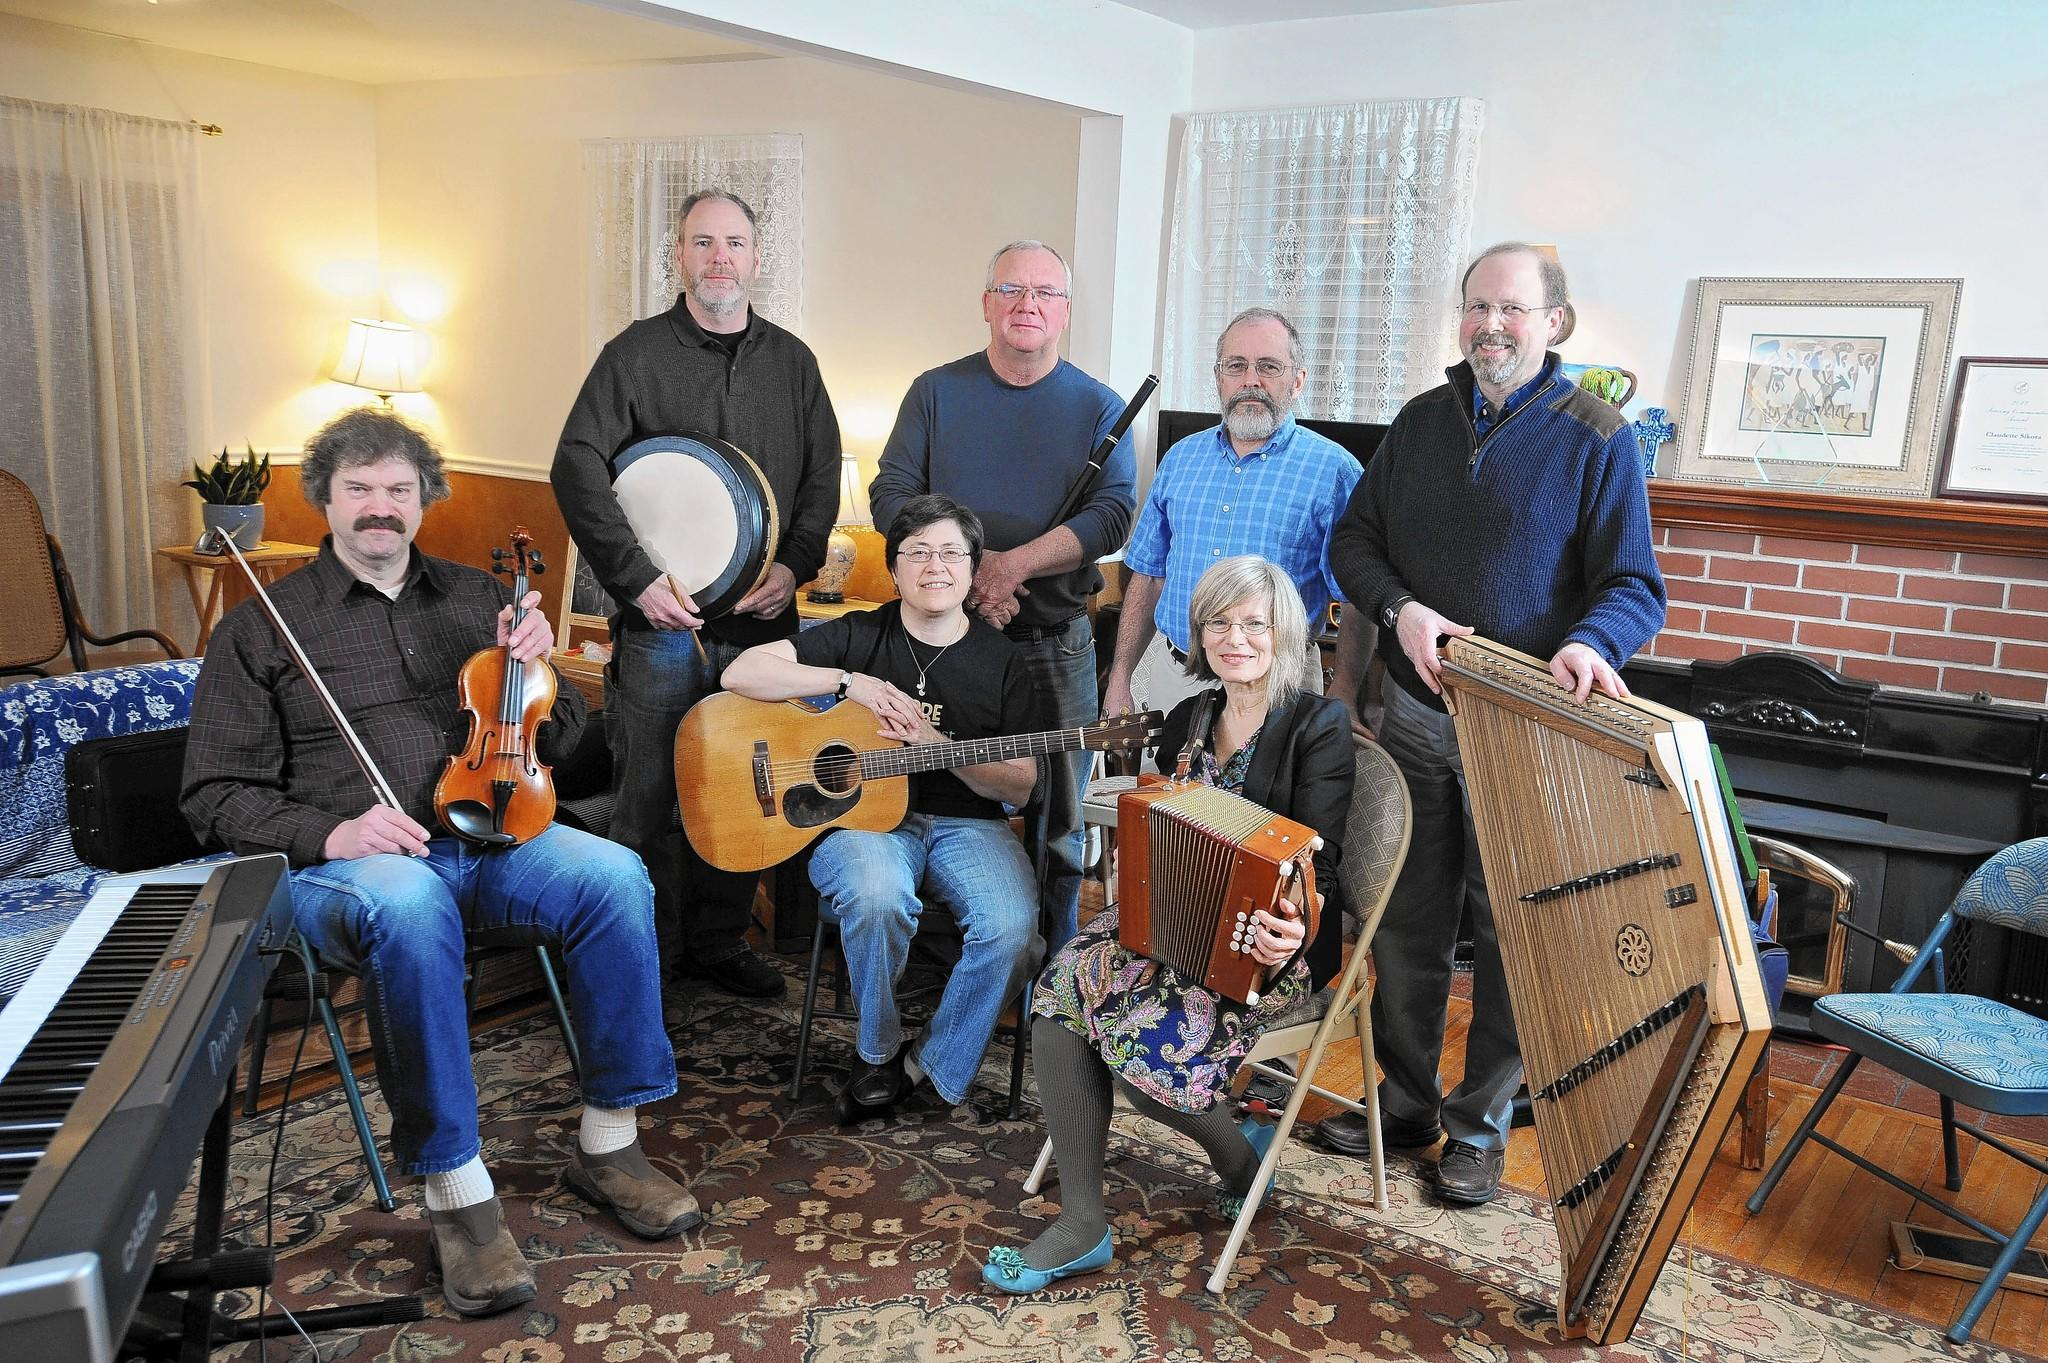 Members of the Tanzania Ceili Band (seated l-r) Ray Lucas, fiddle, Meg Ferguson, guitar, and Claudette Sikora, band coordinator and Irish button accordion. (standing l-r) Norm Myers, Bodhran drum, Martin McCann, wooden flute, Tim Lynch, President of Tanzanian Children's Project, and Harry Ferguson, hammered Dulcimer. The band is rehearsing for one of their up-coming performance at the Wilde Lake Interfaith Center. The traditional Irish band started in 2010 out of the Tanzanian Children's Project to raise funds to support orphans from the African country by building orphanage and medical center.